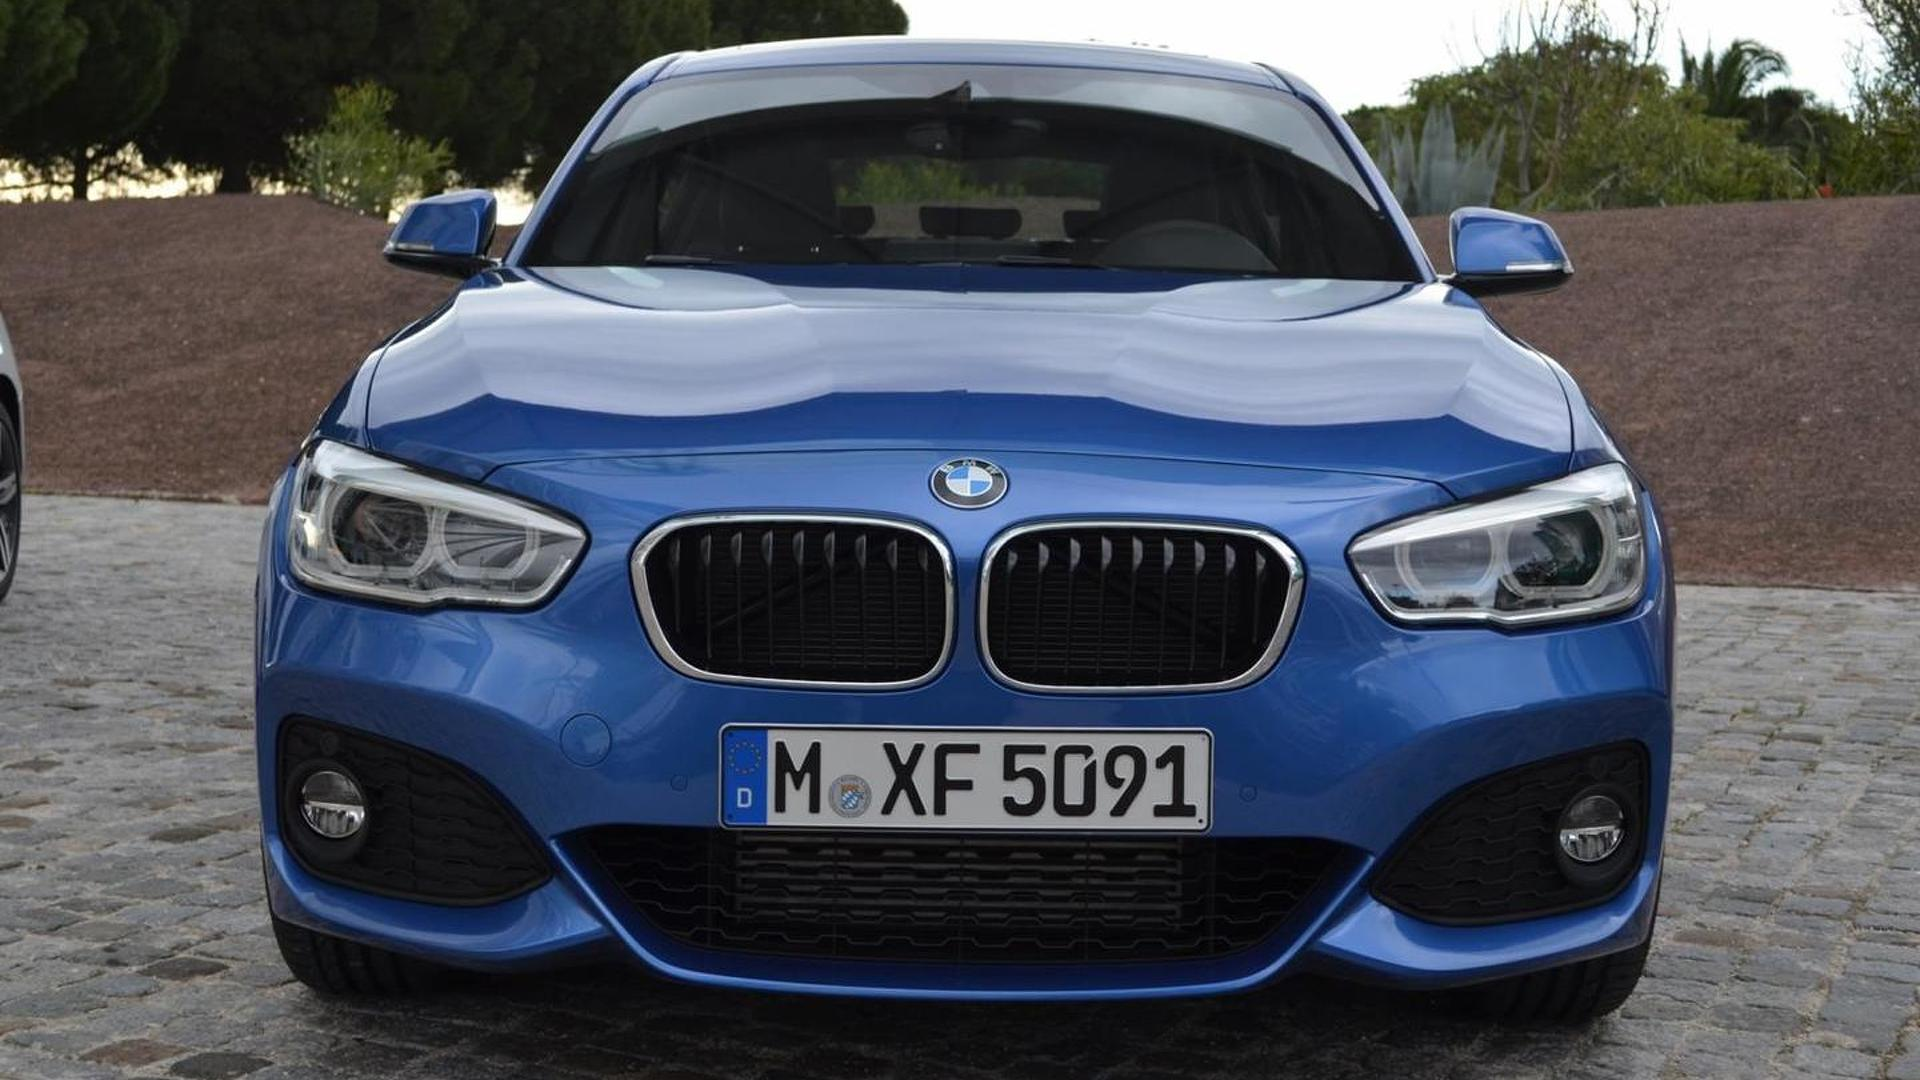 BMW 1-Series facelift with M Sport Package photographed in Portugal